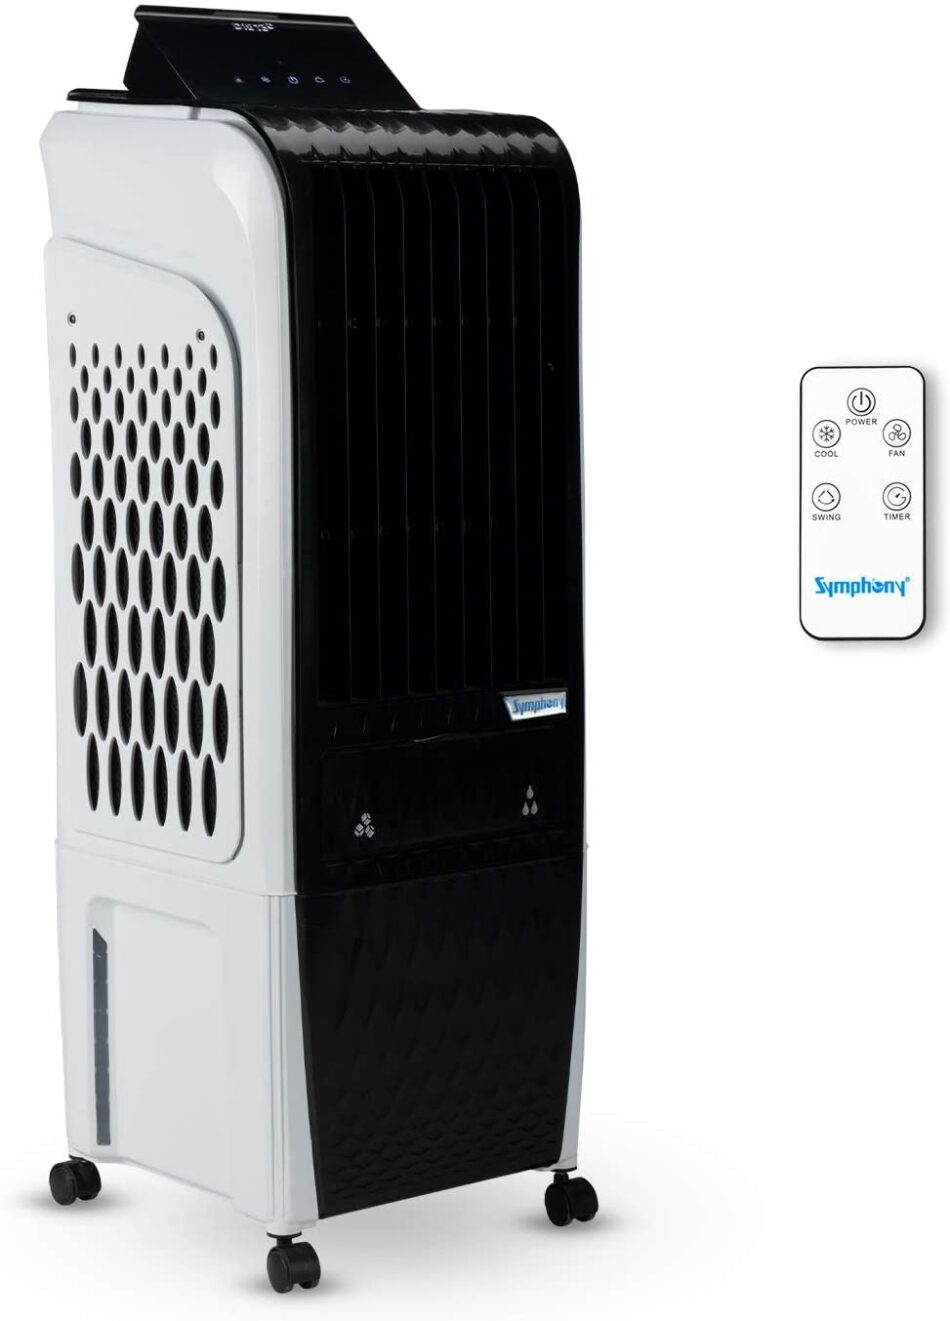 Symphony Diet 3D 20i Personal Tower Air Cooler 20-litres, with Magnetic Remote, 3-Side Cooling Pads, Pop-up Touchscreen, Multistage Air Purification, & Low Power Consumption (Black & White)